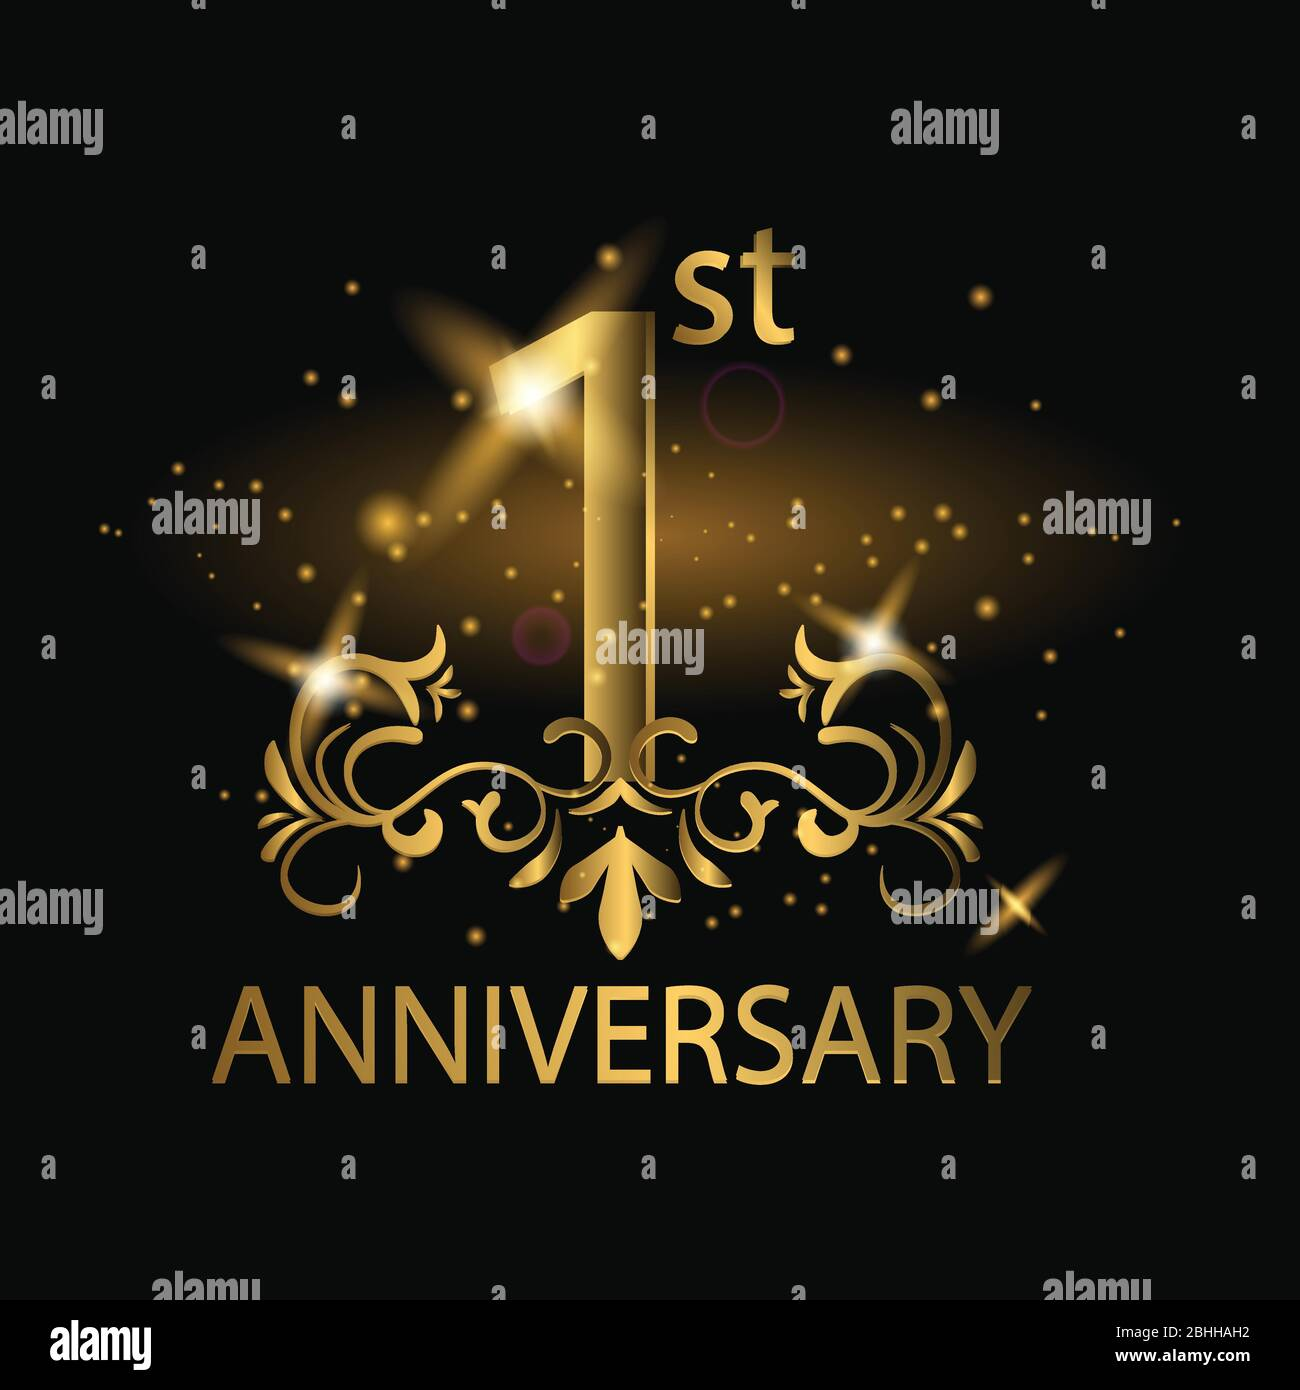 1st years anniversary celebration 1st anniversary logo with gold color foil sparkle stock vector image art alamy alamy